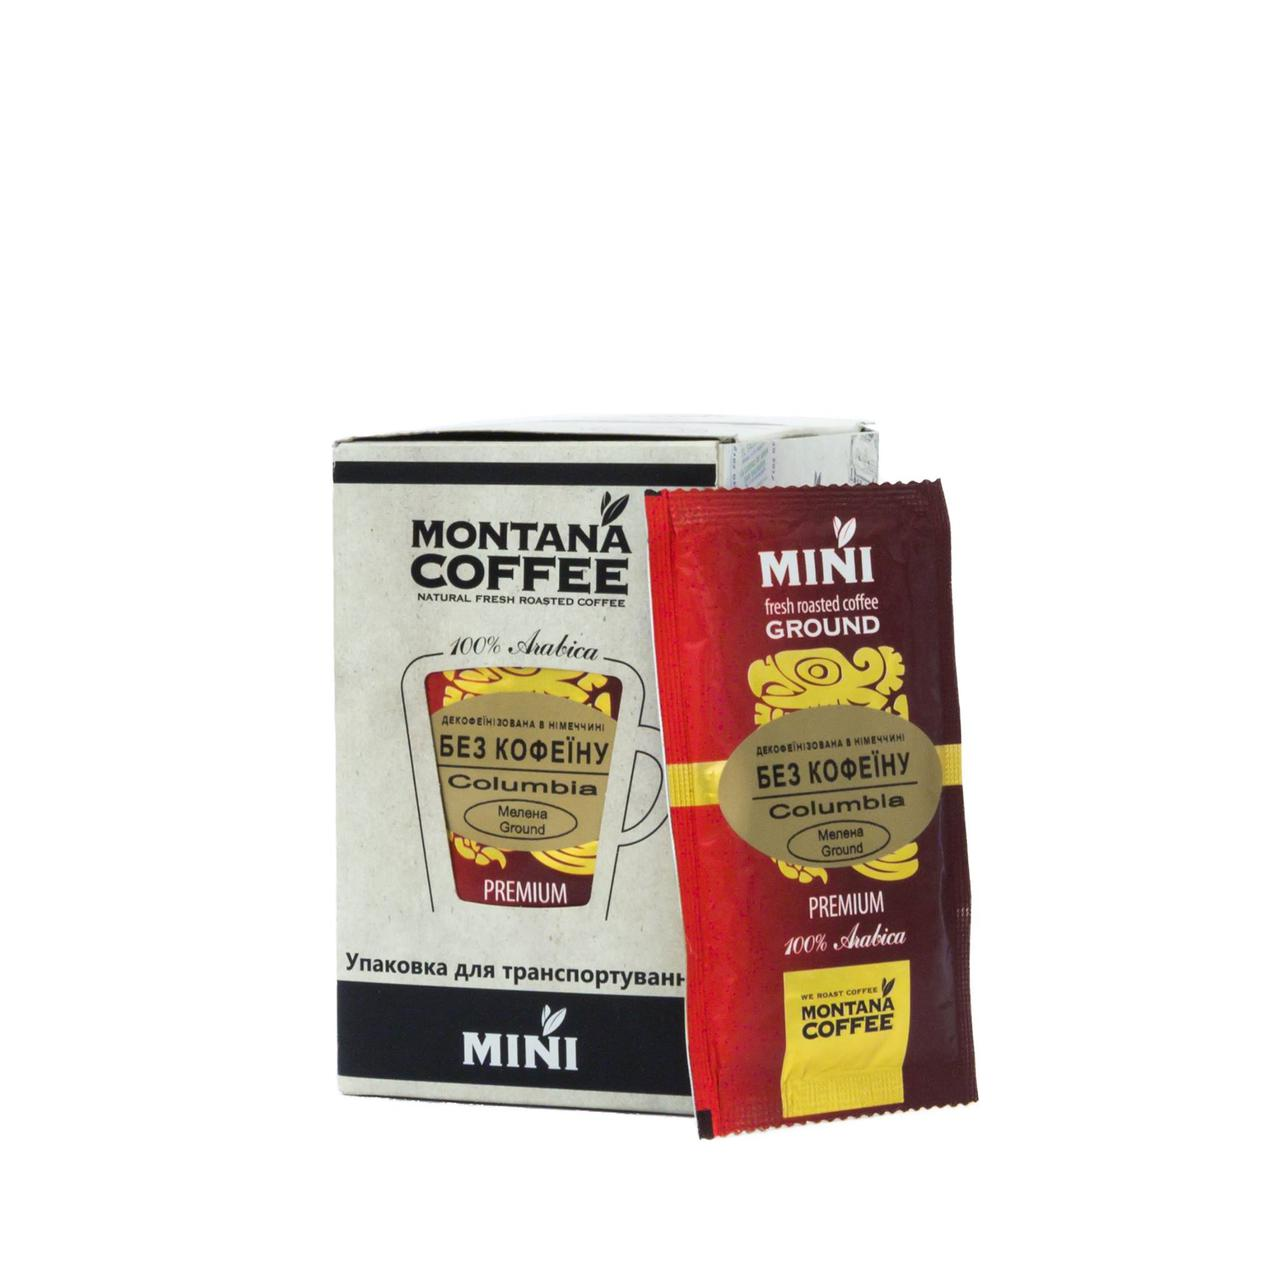 Без кофеина Колумбия Montana coffee MINI 20 шт